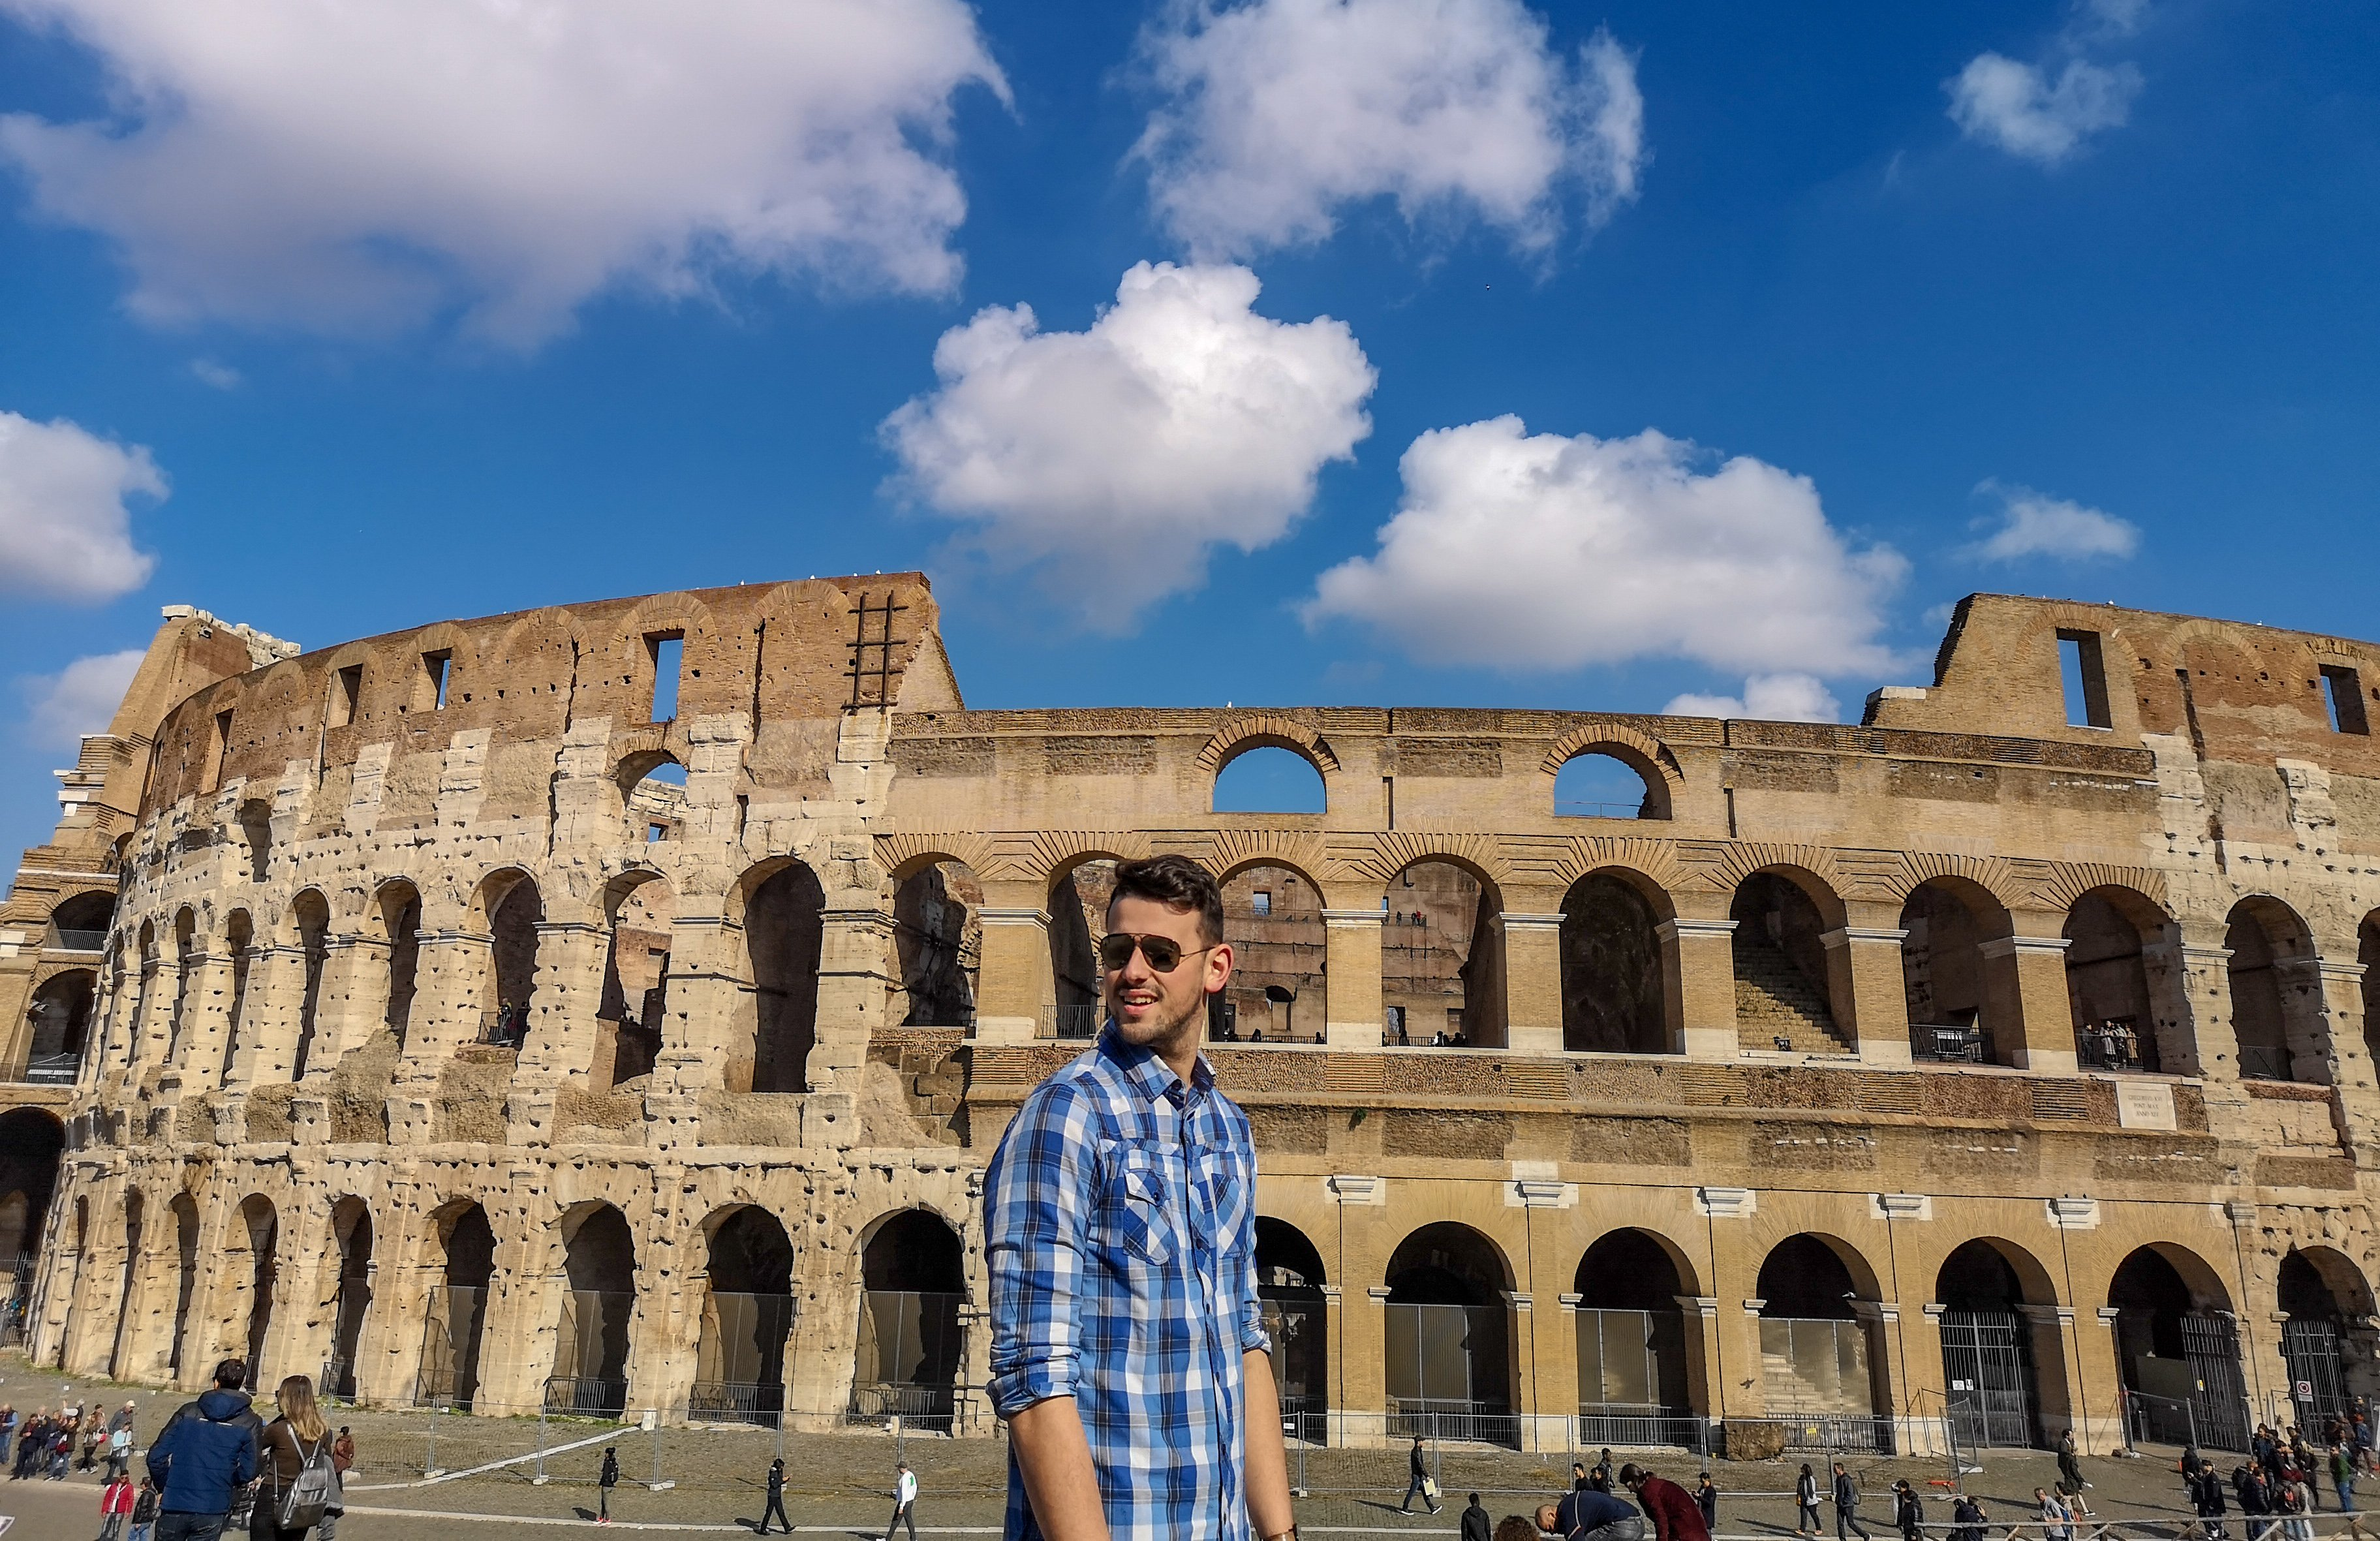 Rome: Trip to the Eternal city, where all the roads lead you back in